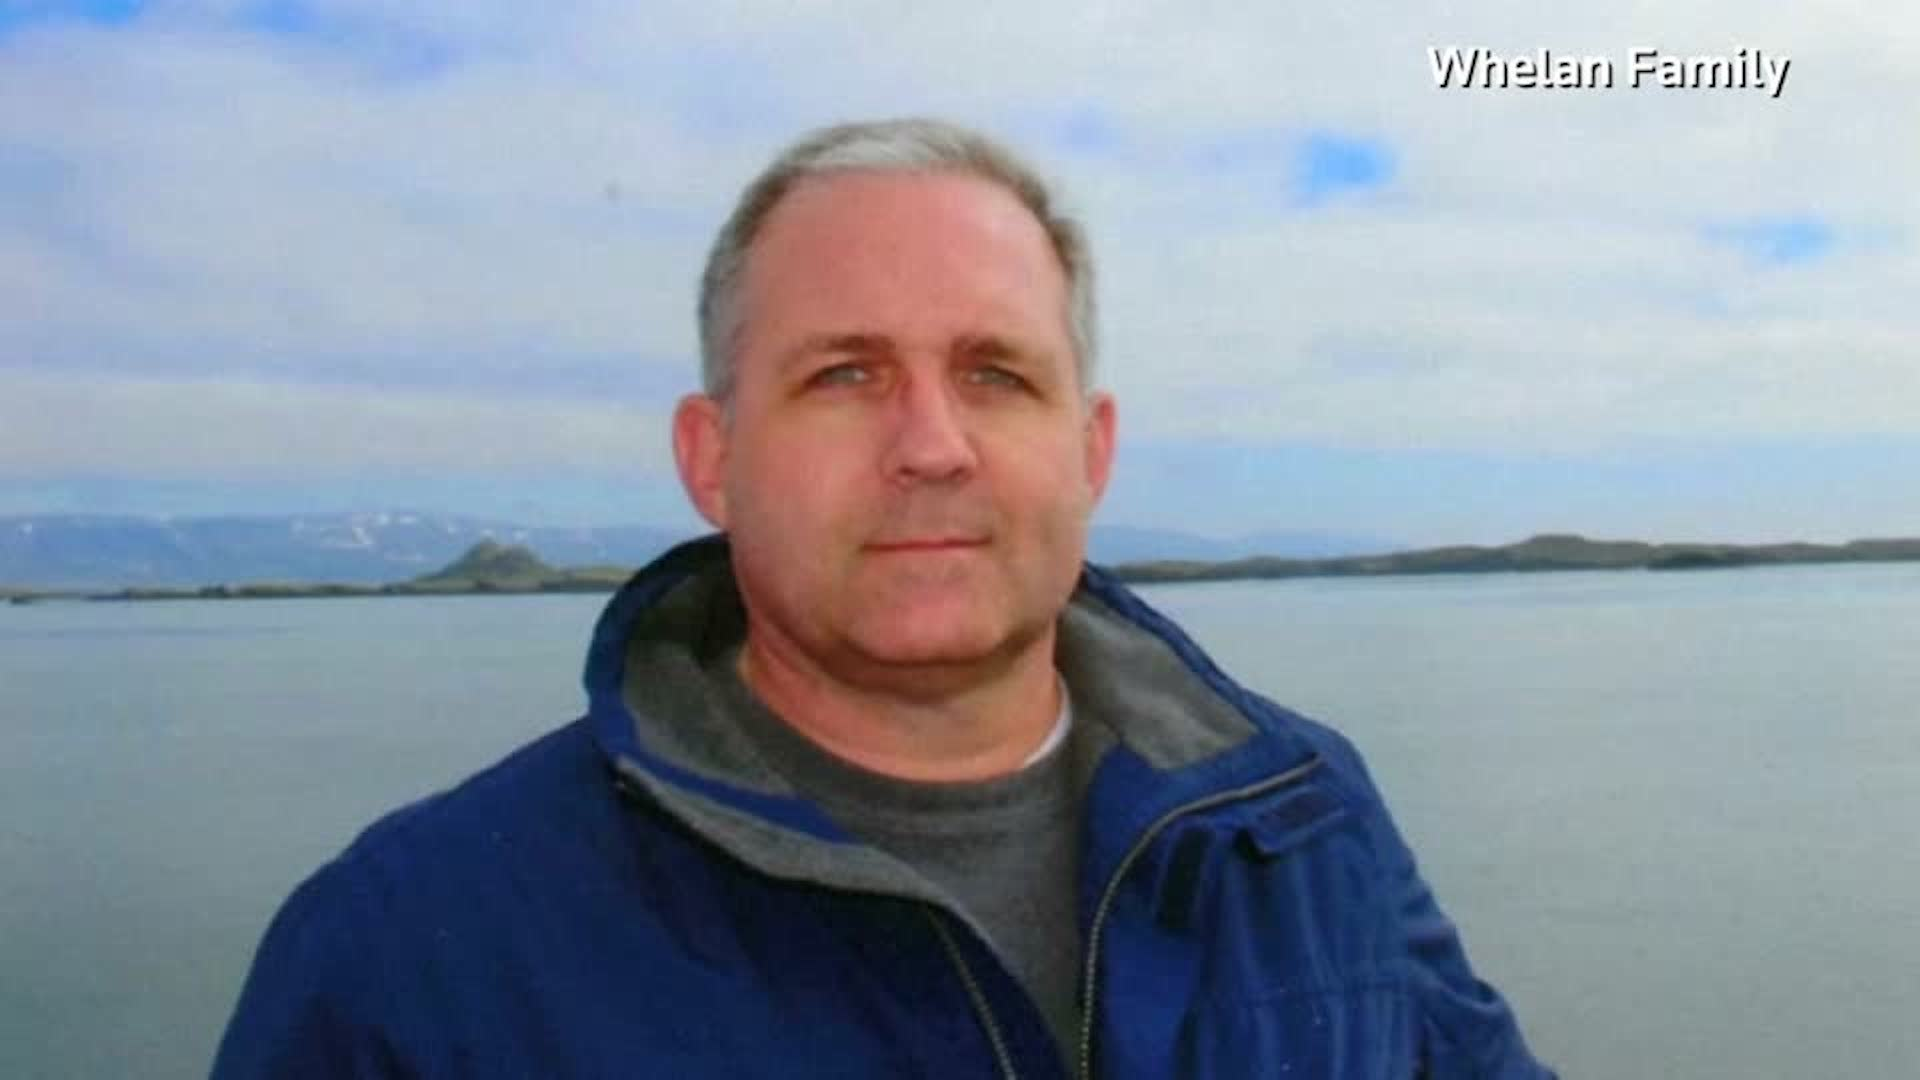 Paul Whelan probably isn't a spy. So why did Russia detain him?